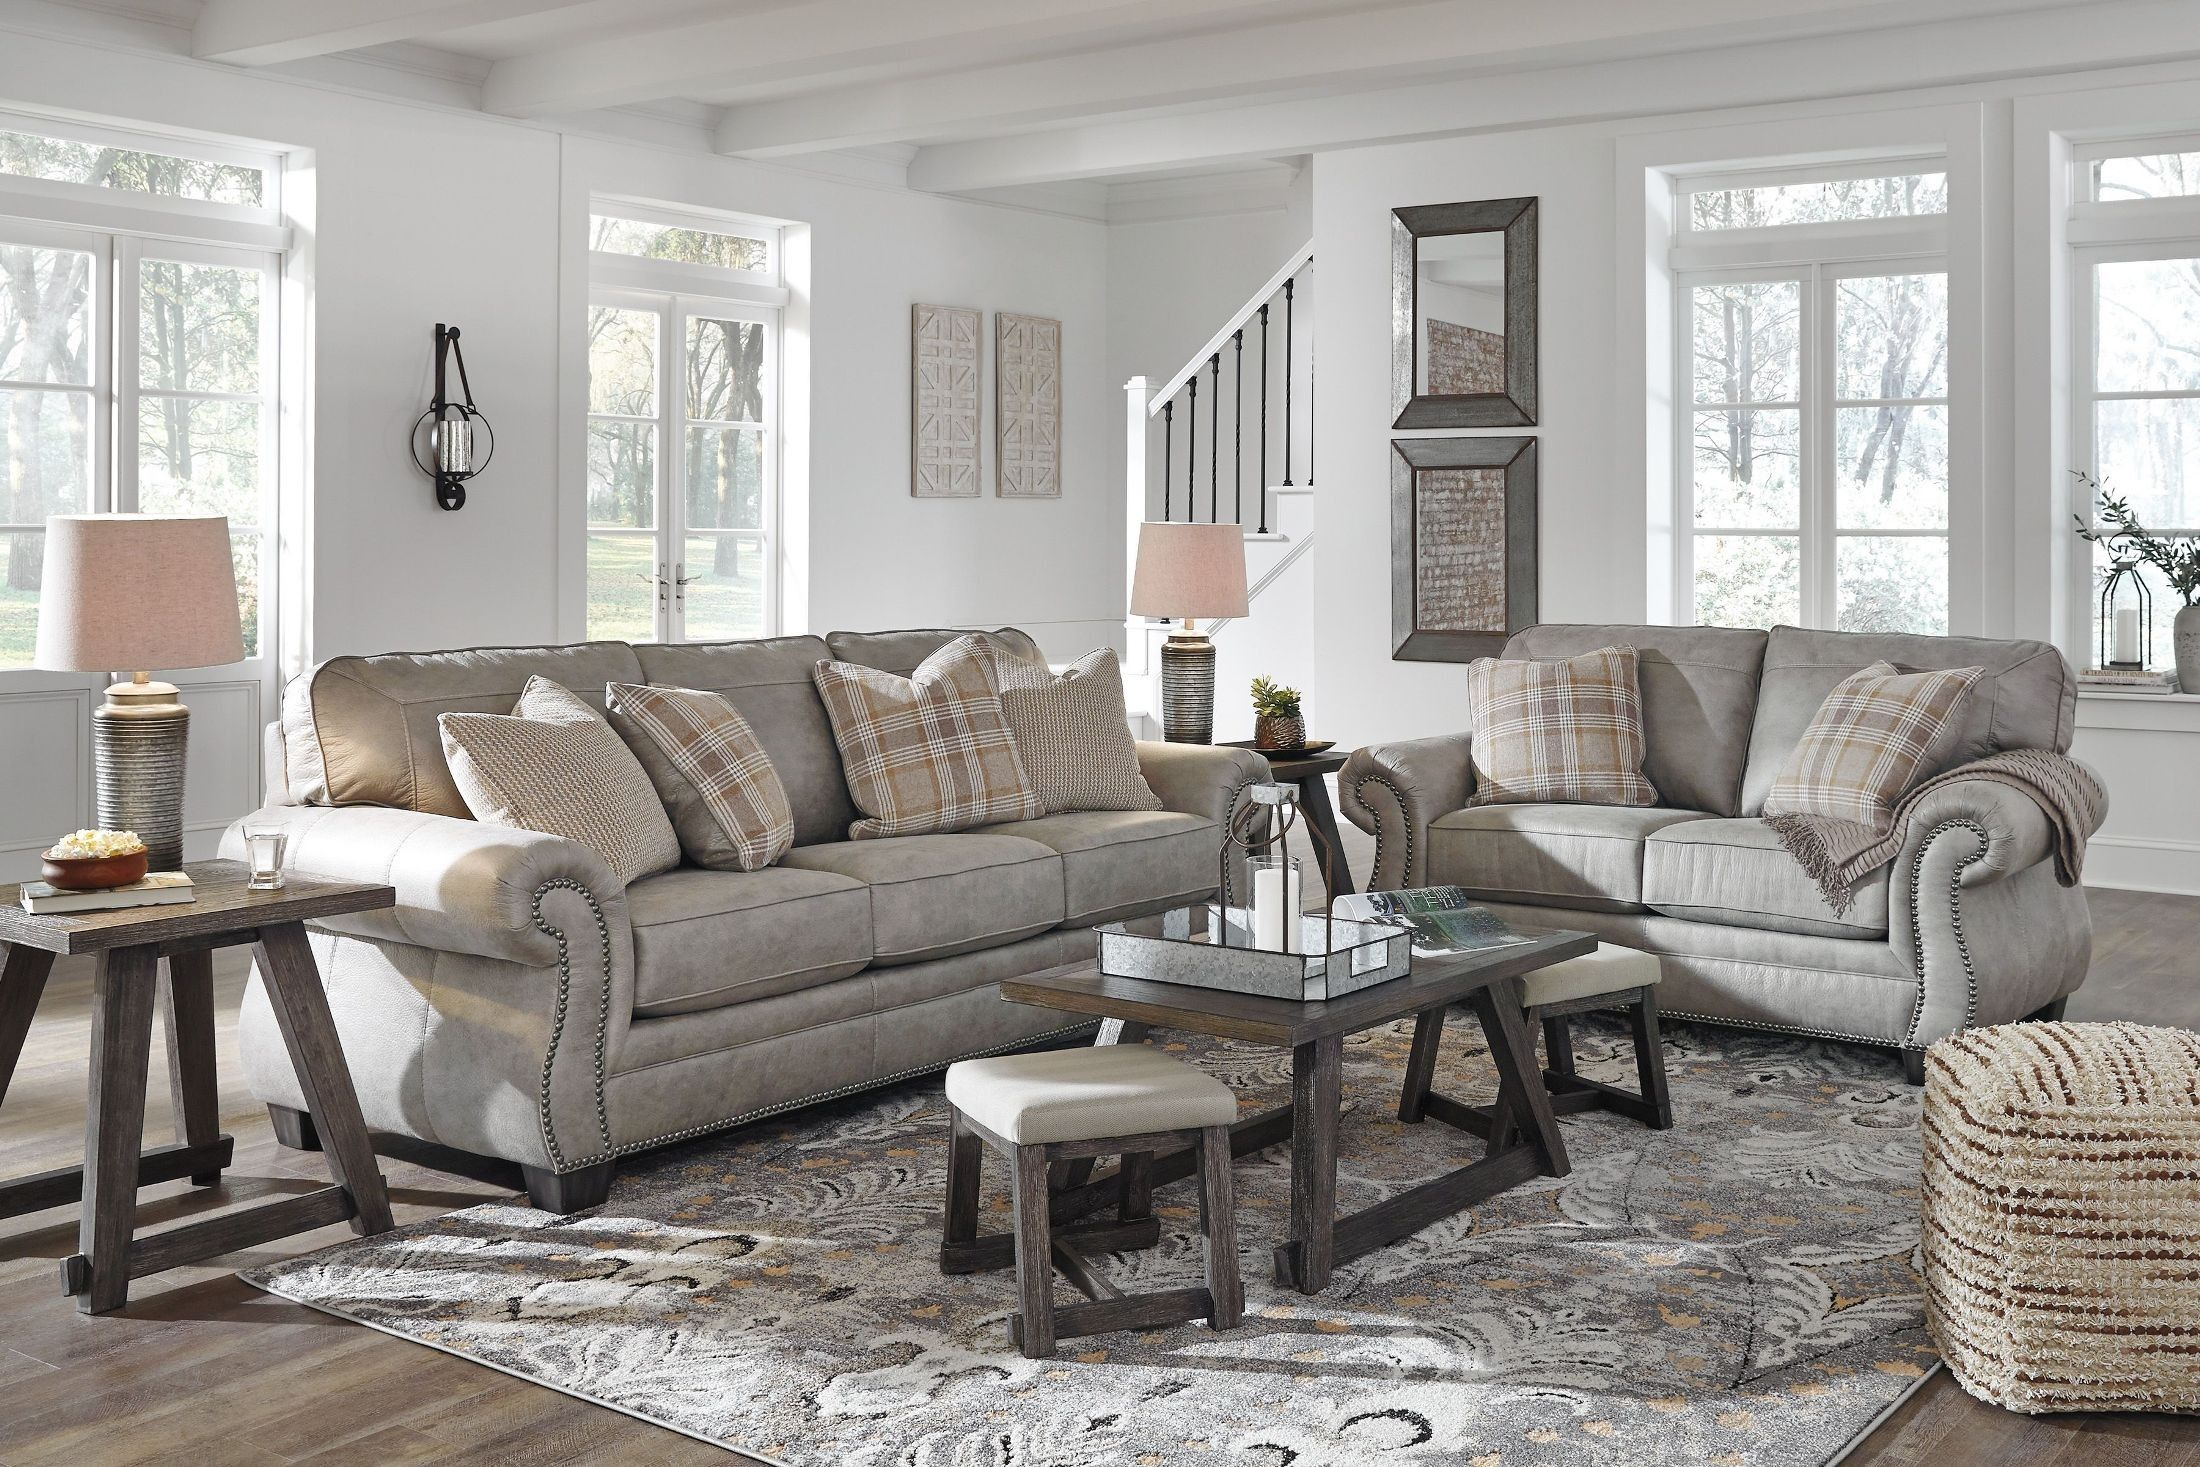 Olsberg Steel Living Room Set Cheap Living Room Furniture Cheap